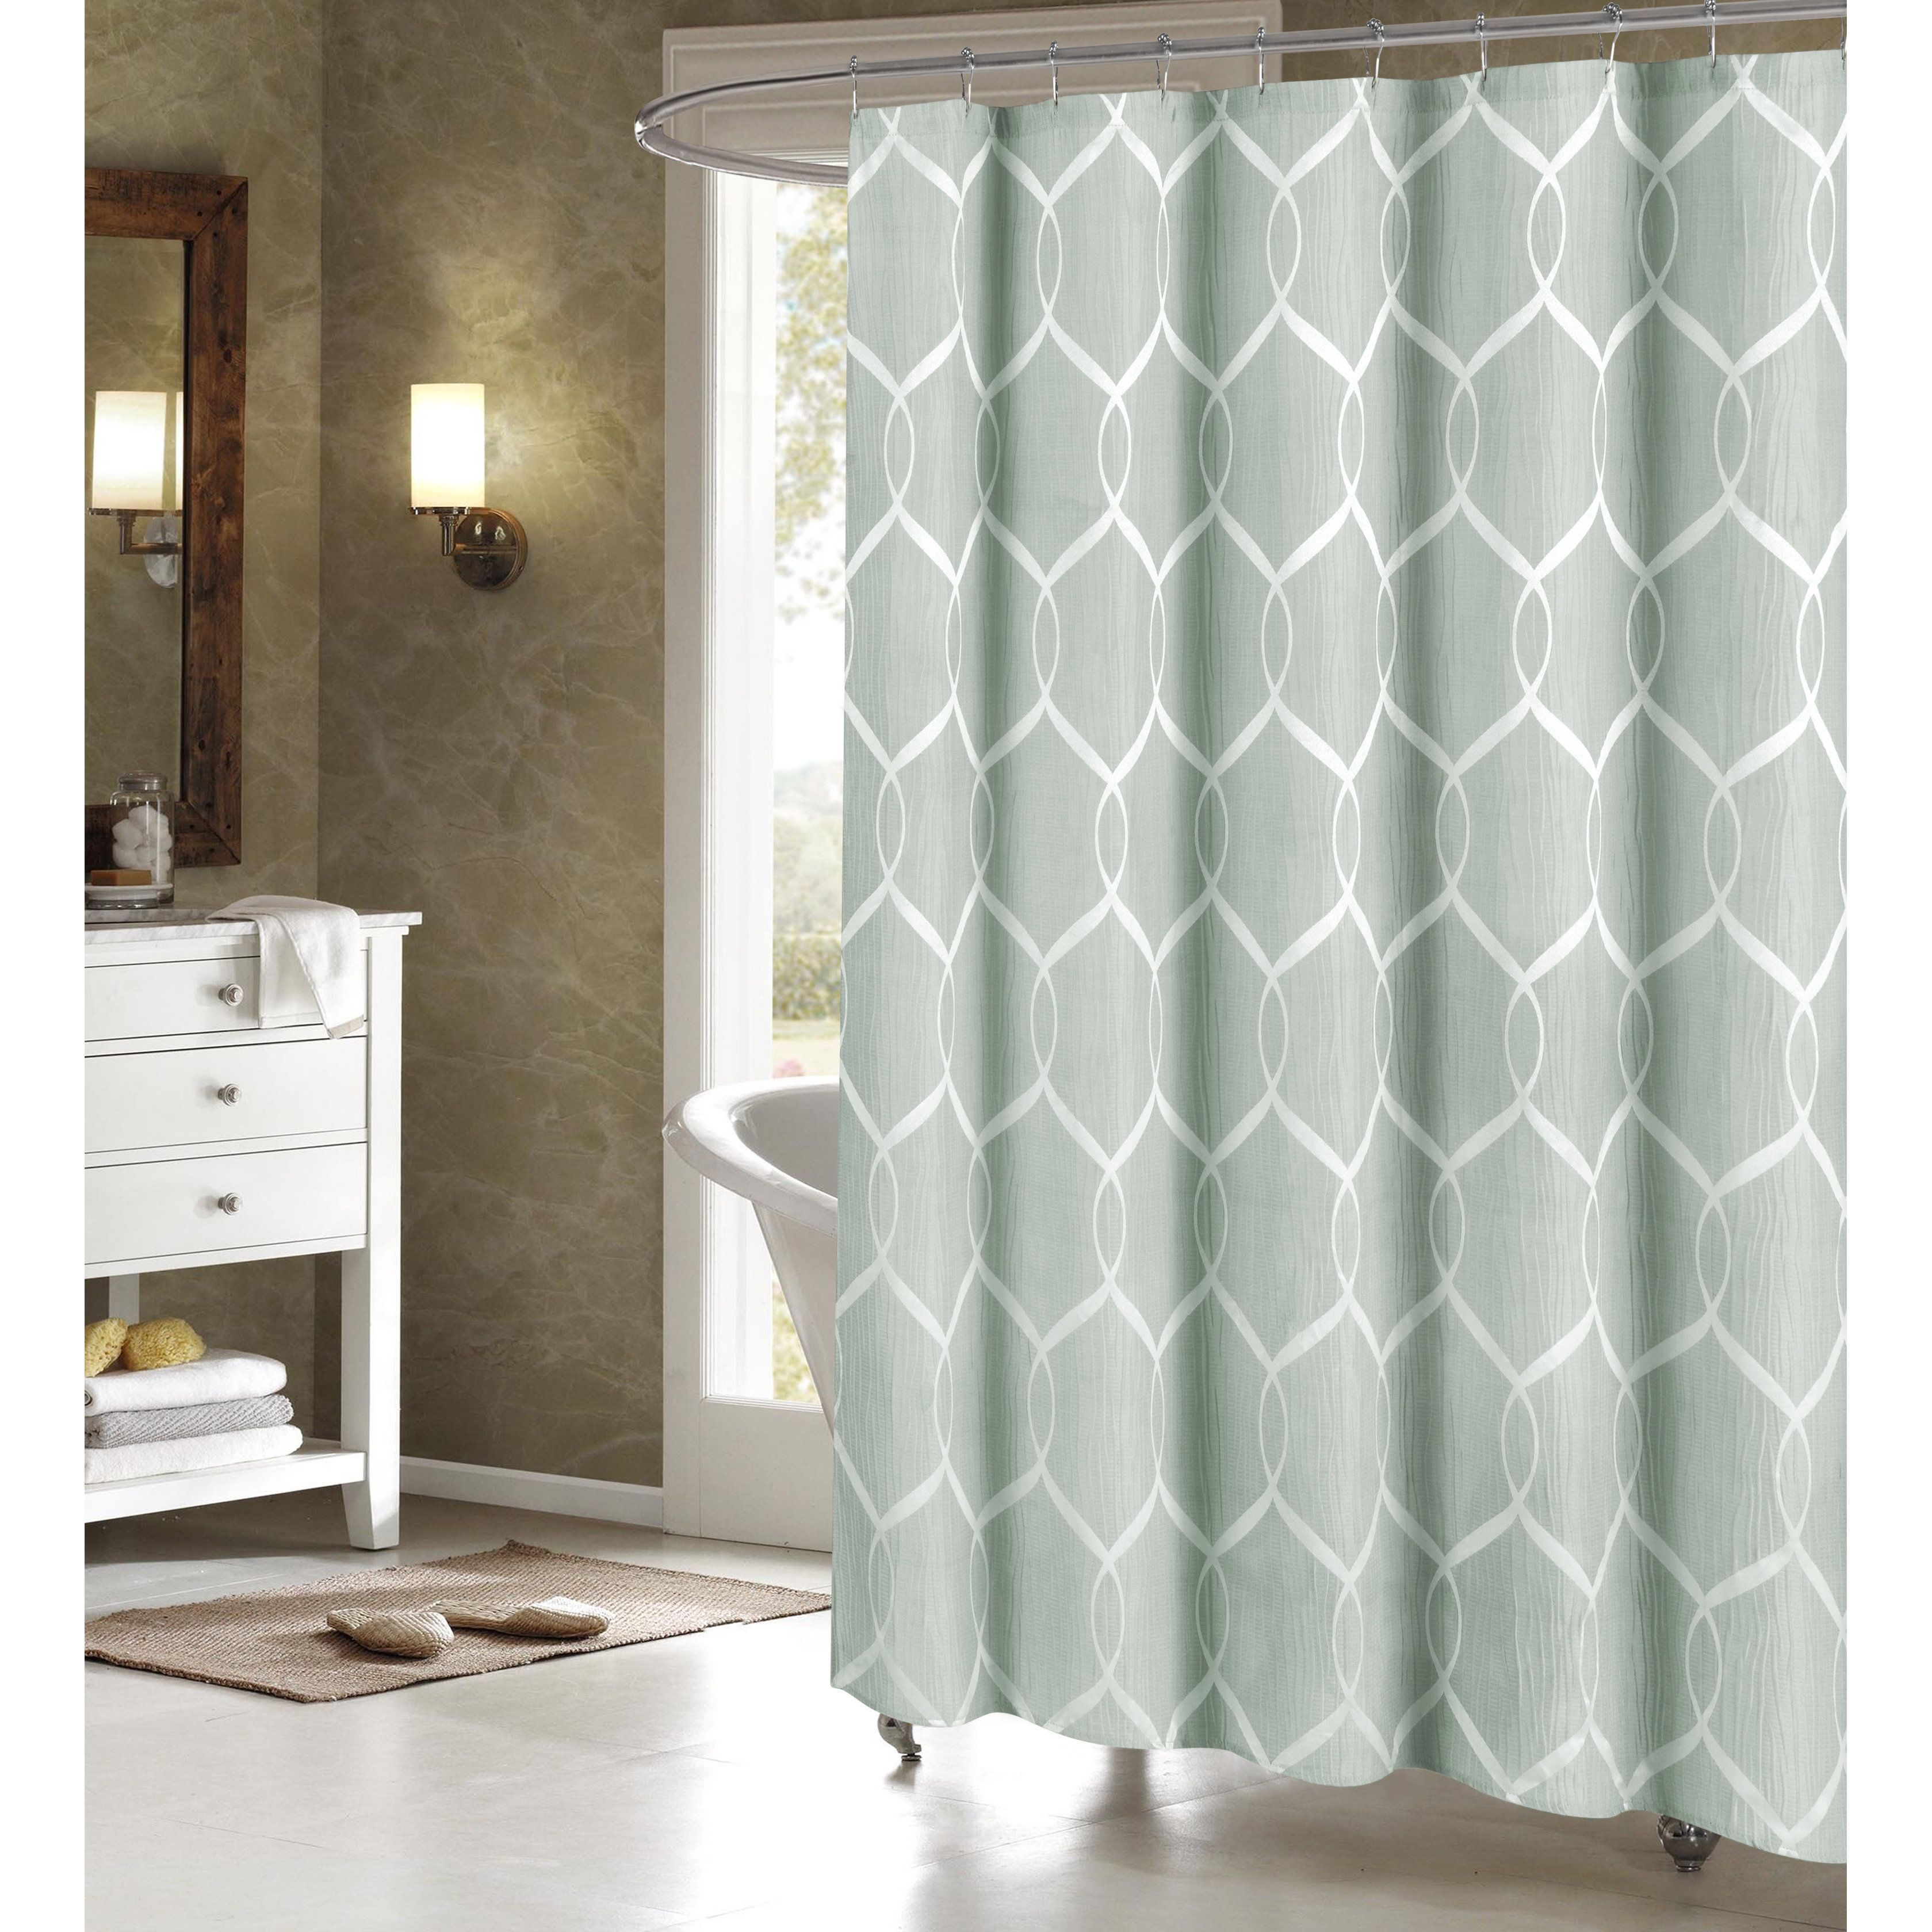 Quey wrinkle wave fabric shower curtain blue duck river girls